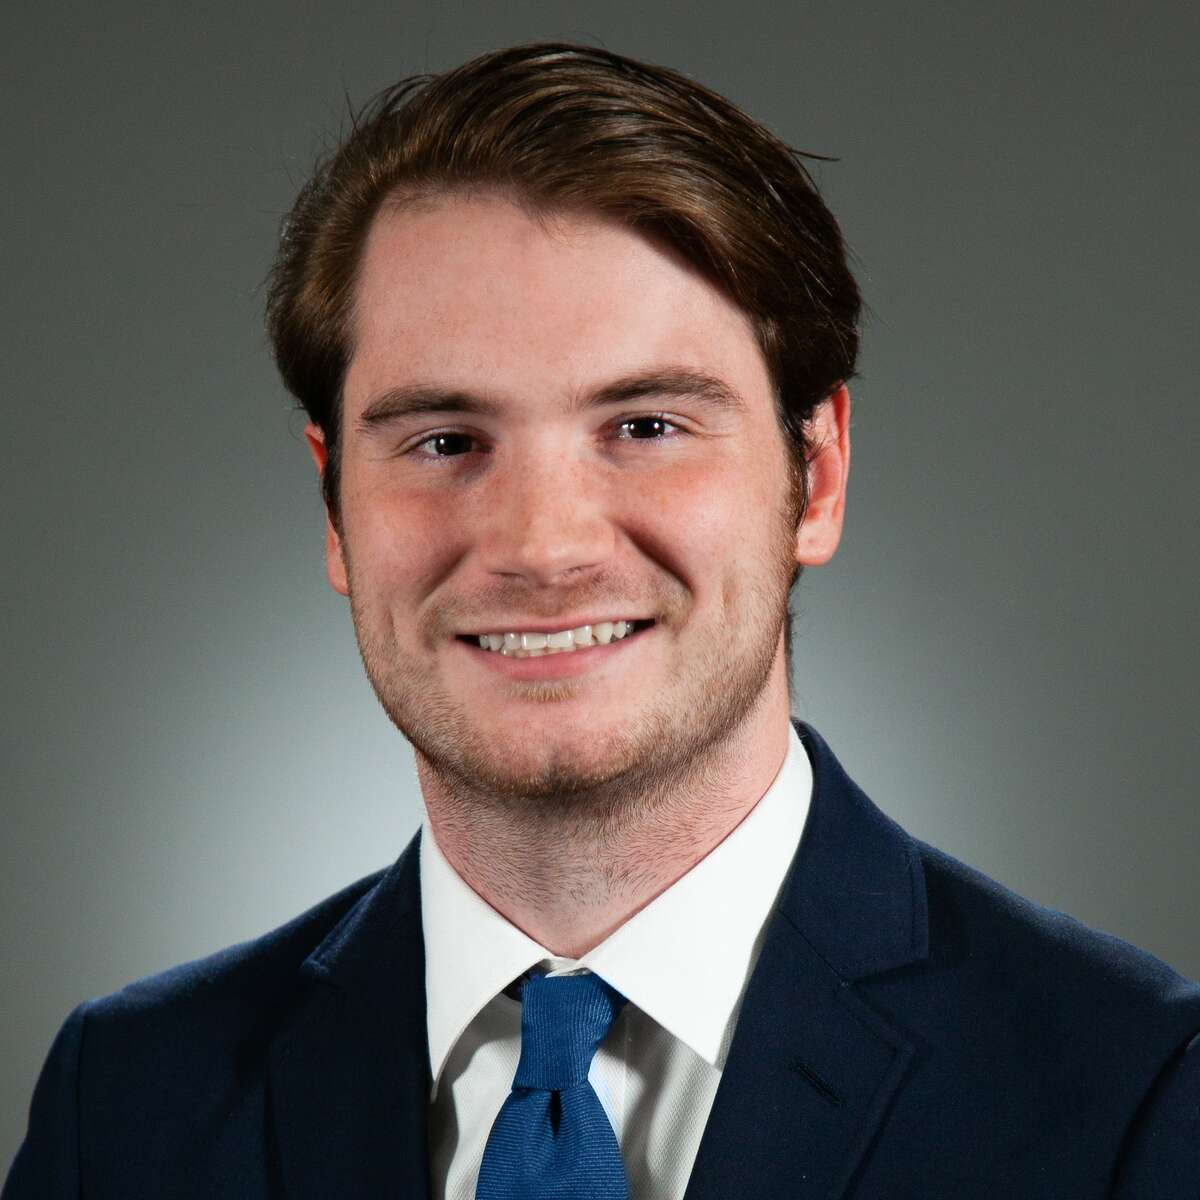 Matt Houston will join KENS 5 on March 22 as their newest reporter.